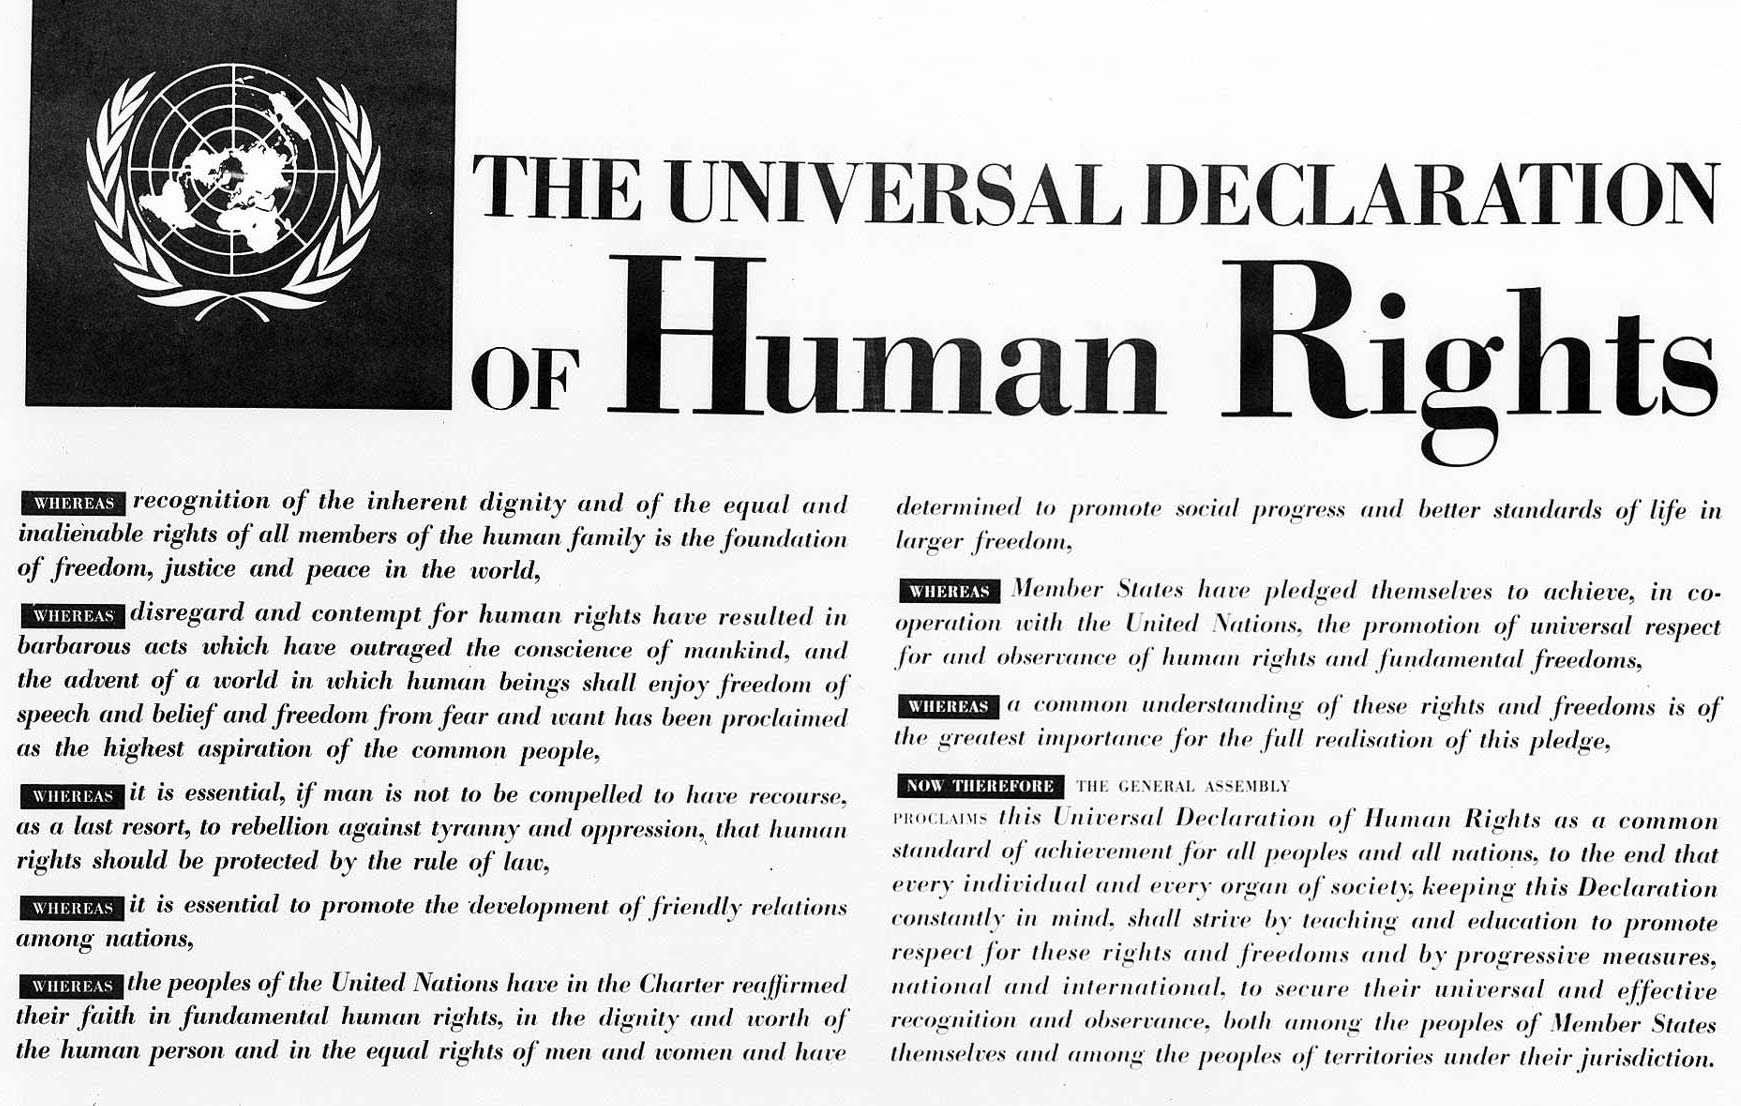 The universal declaration of human rights 10 December 1948